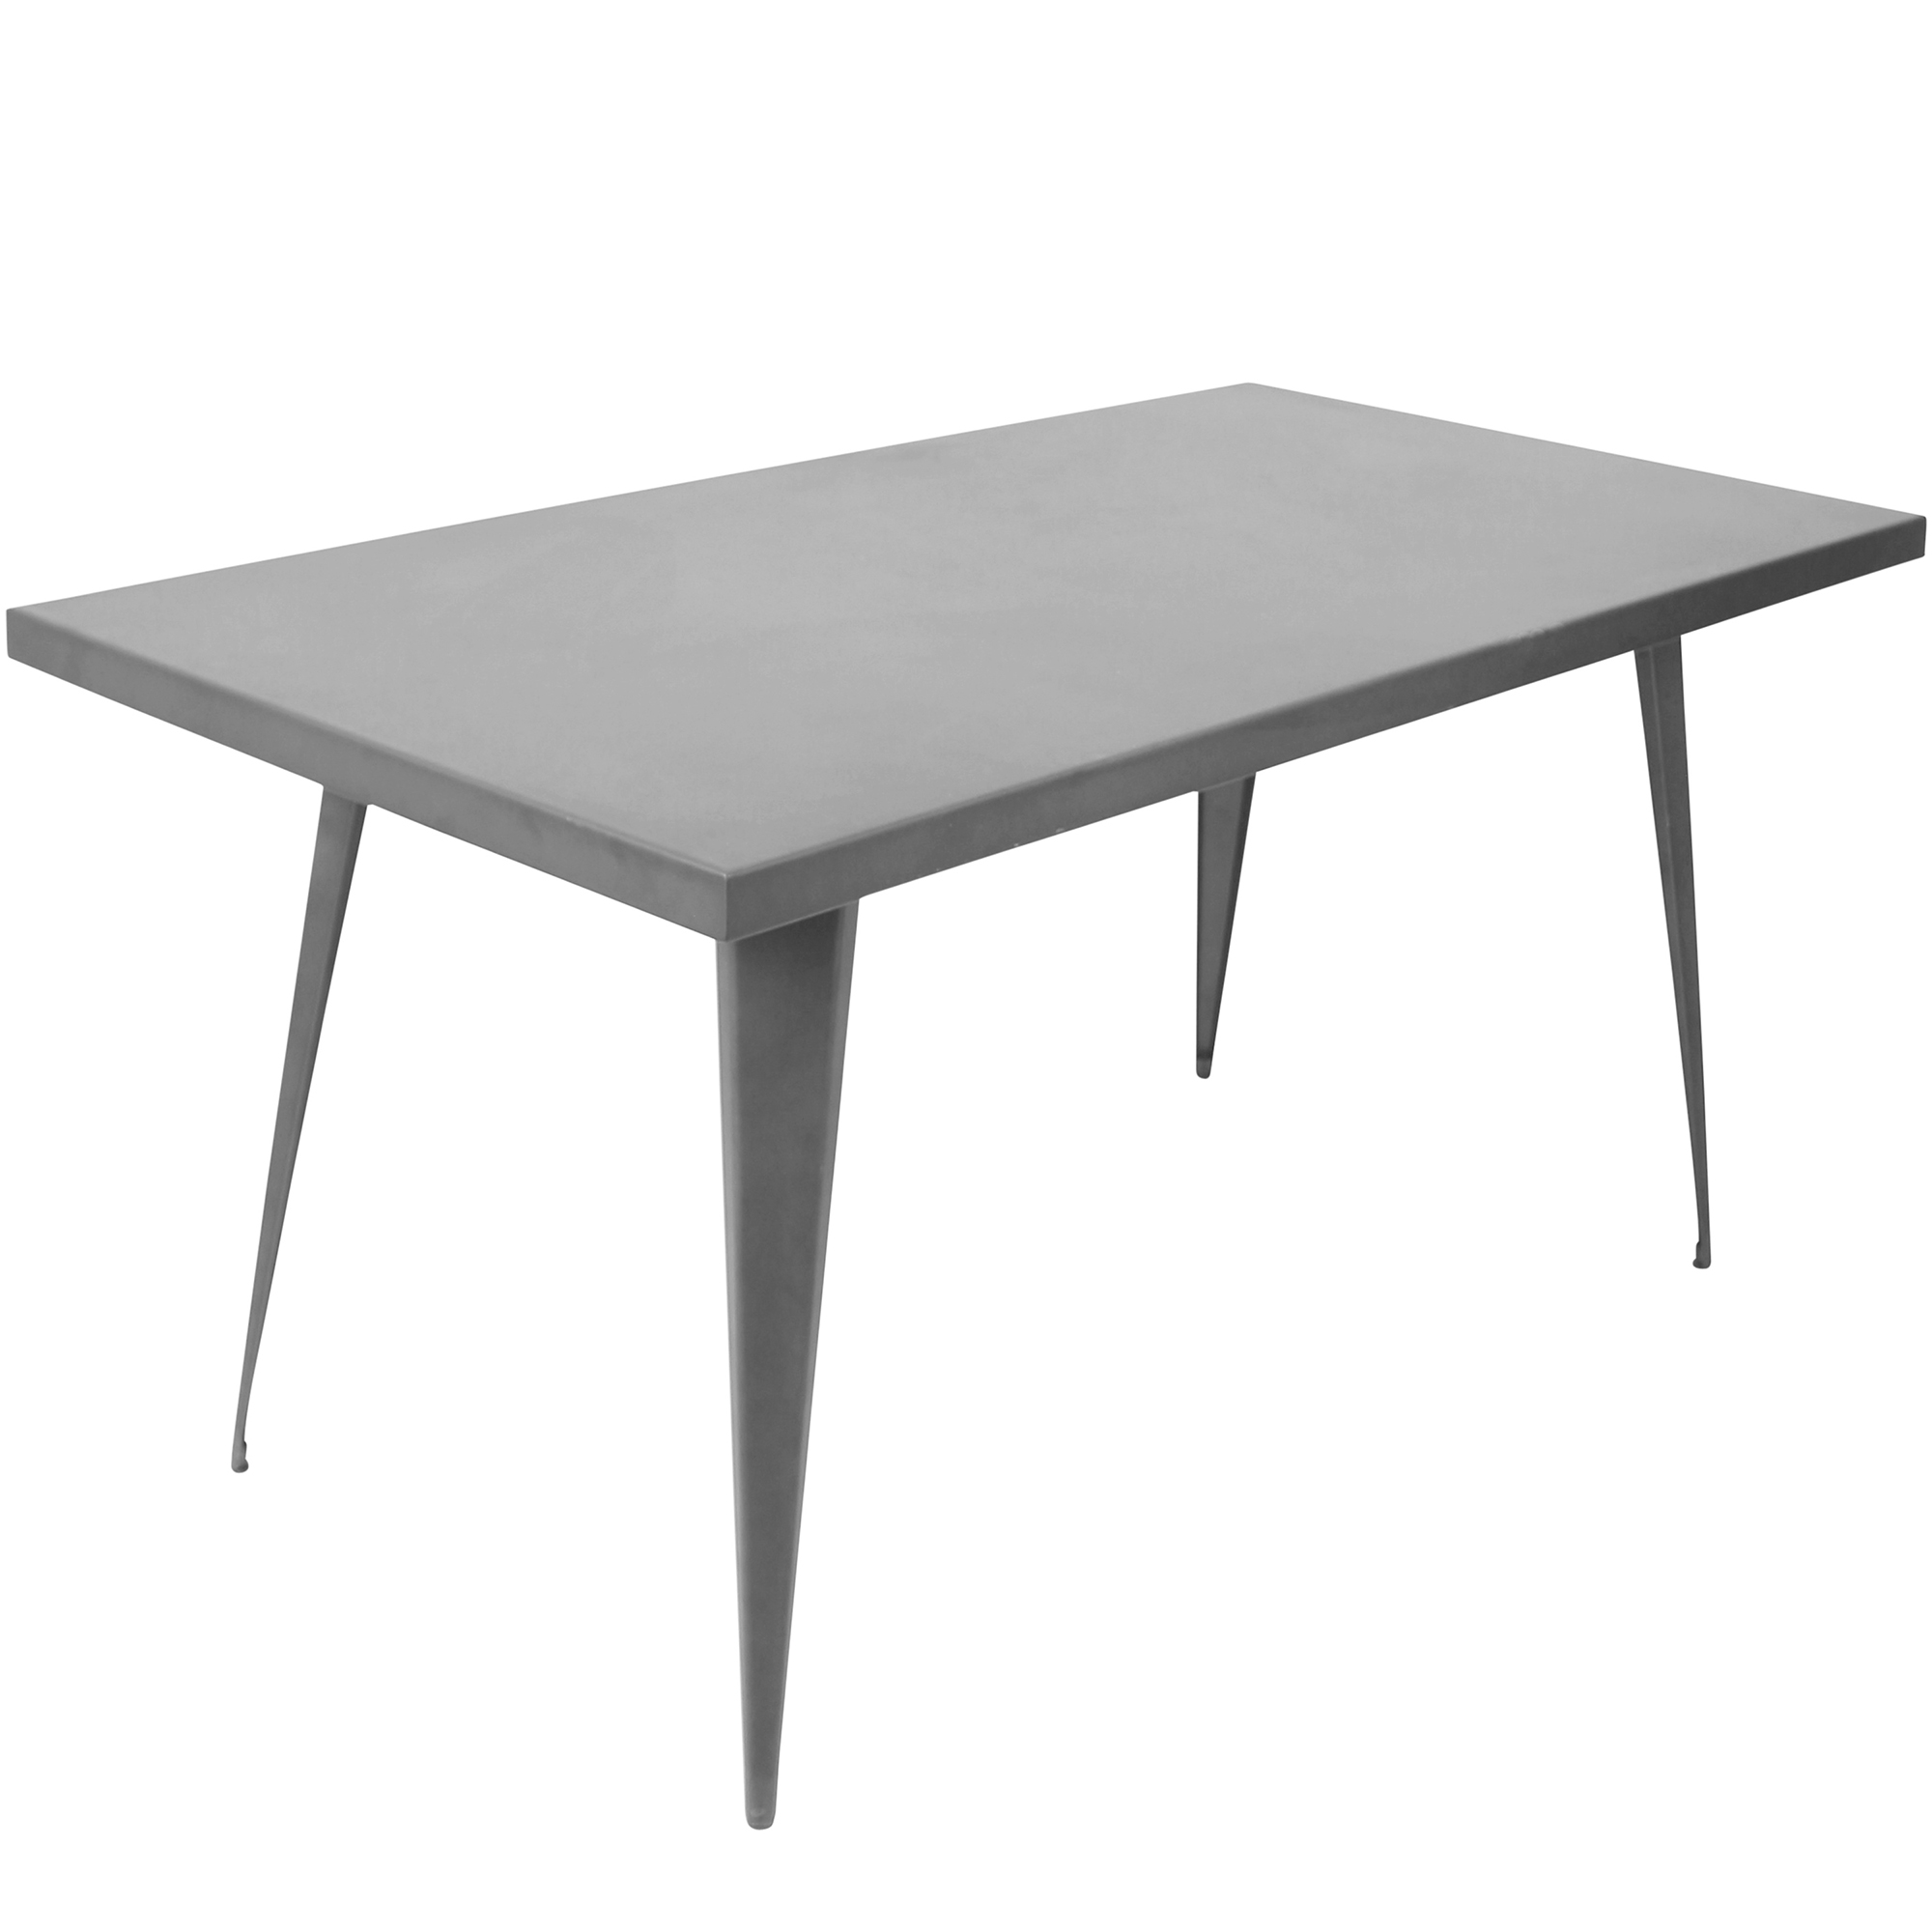 Austin Industrial Dining Table in Matte Grey by Lumisource by LumiSource